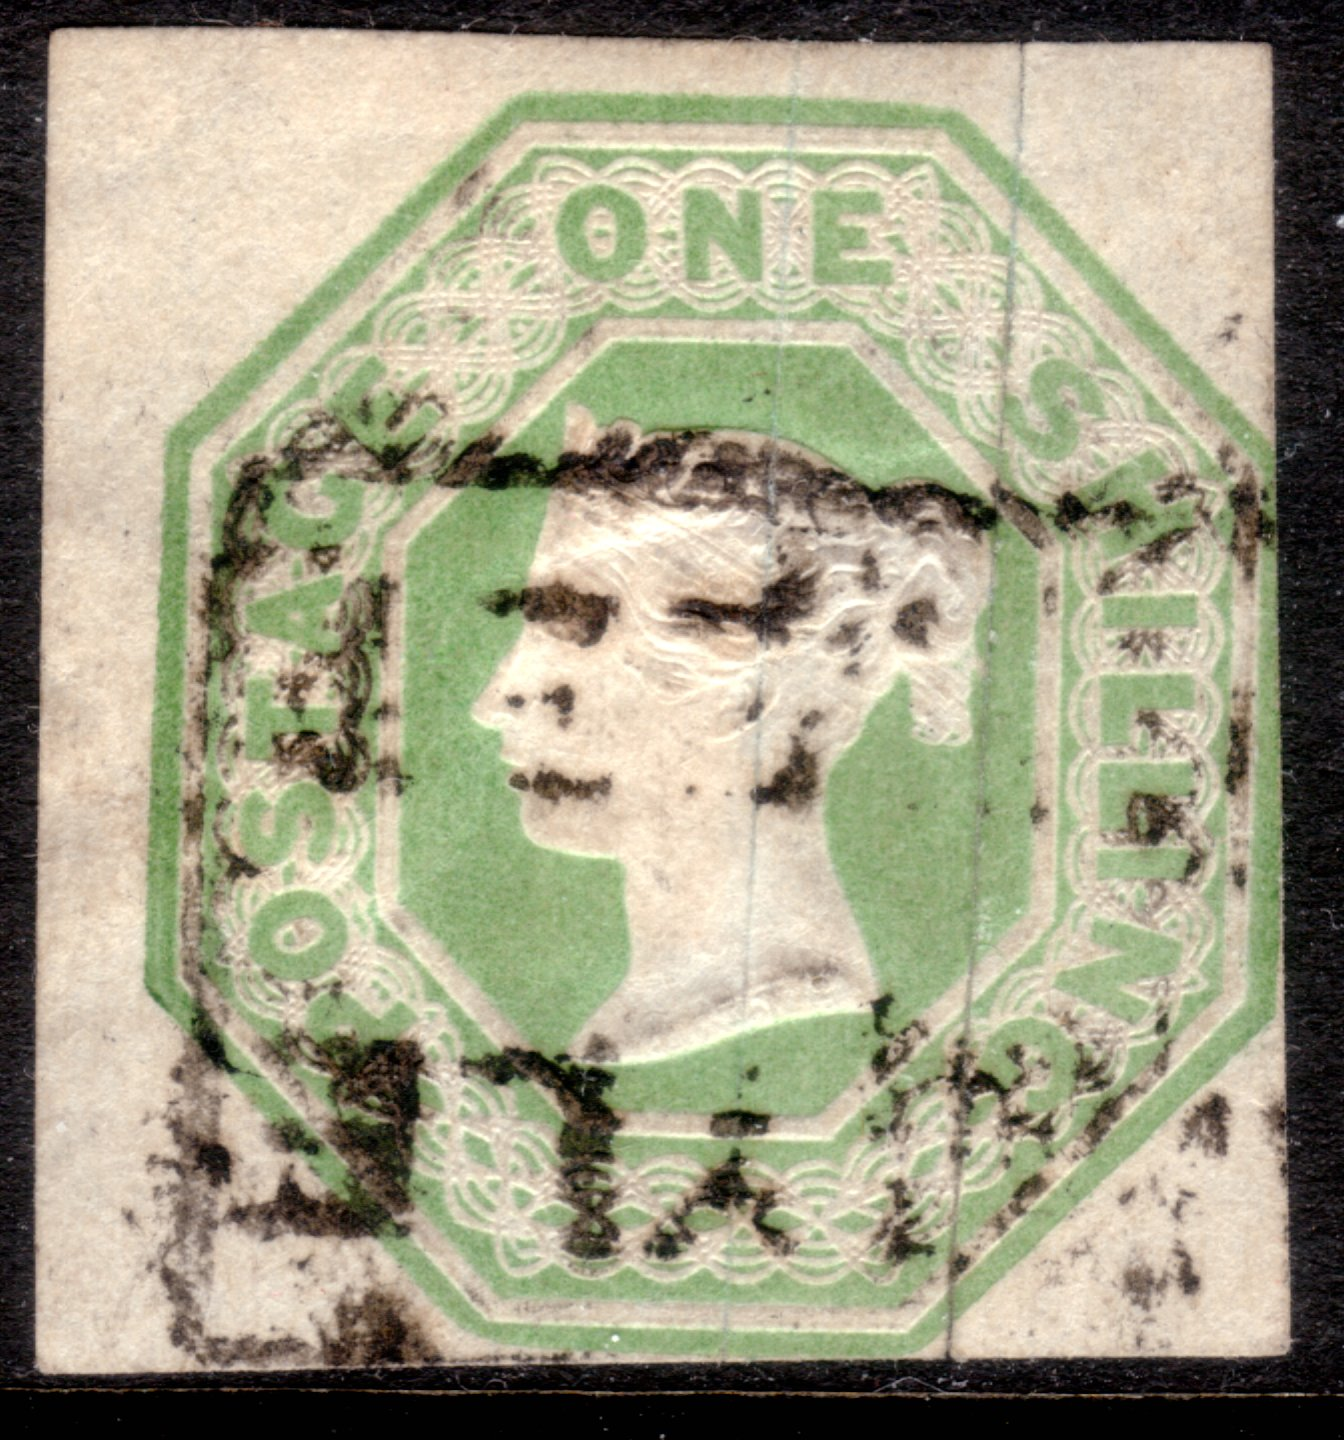 1854 1s Green Embossed Scarce Argyle Street Boxed Cancel